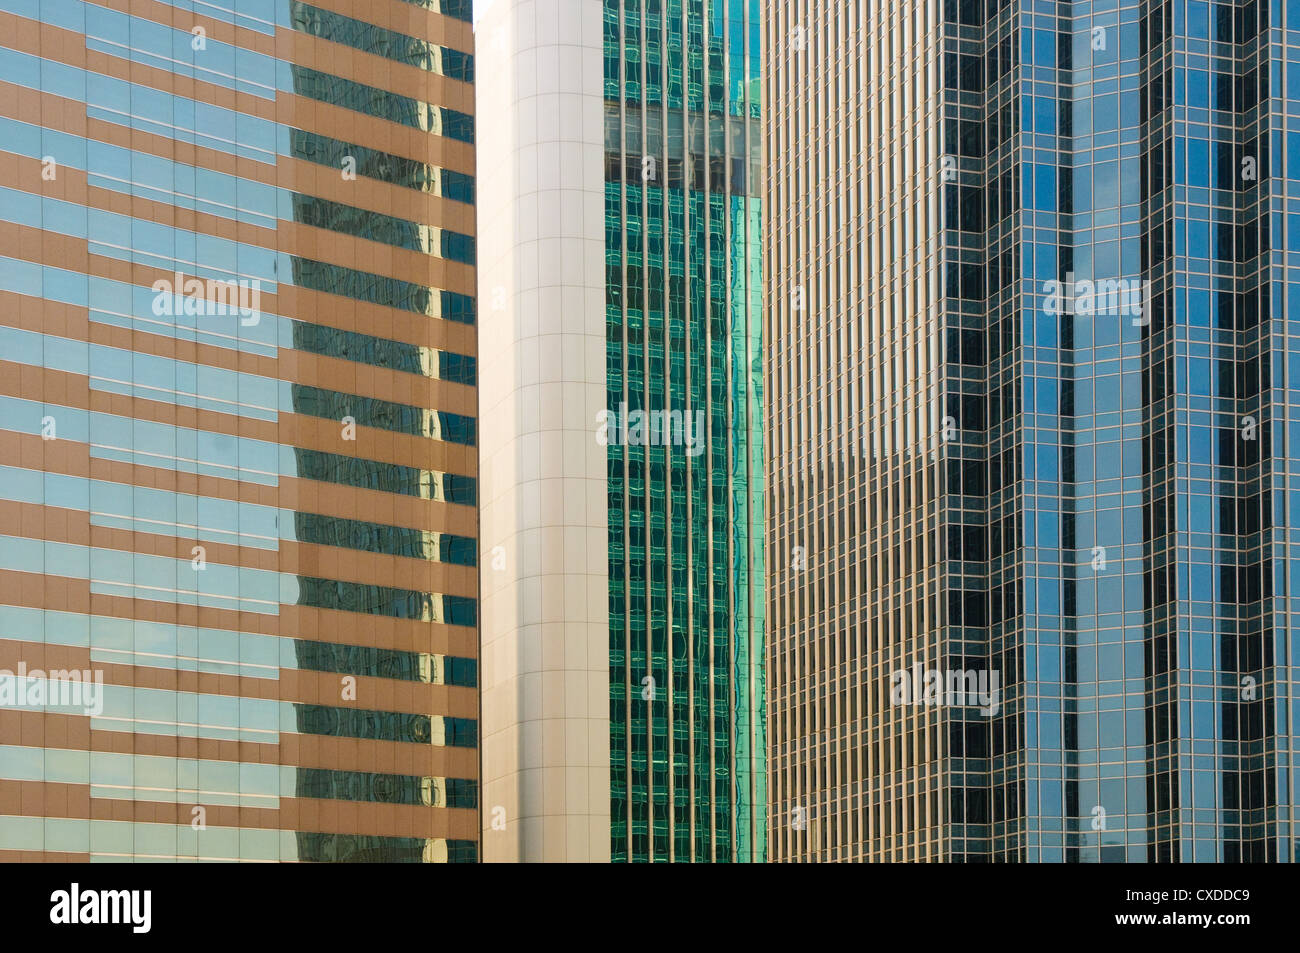 windows of office buildings - Stock Image